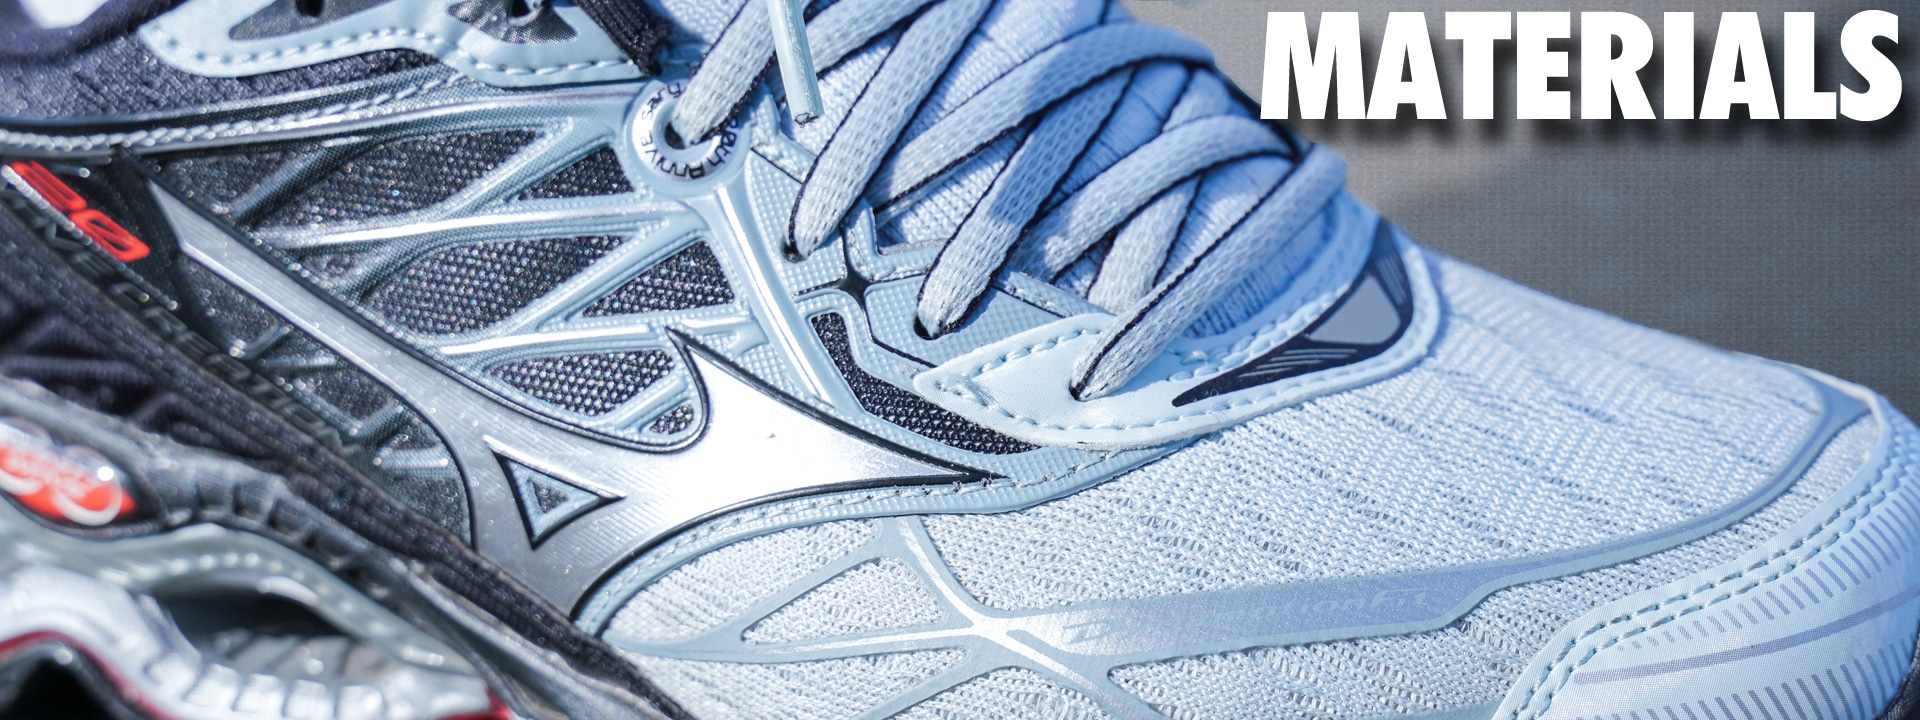 Mizuno Wave Creation 20 Materials